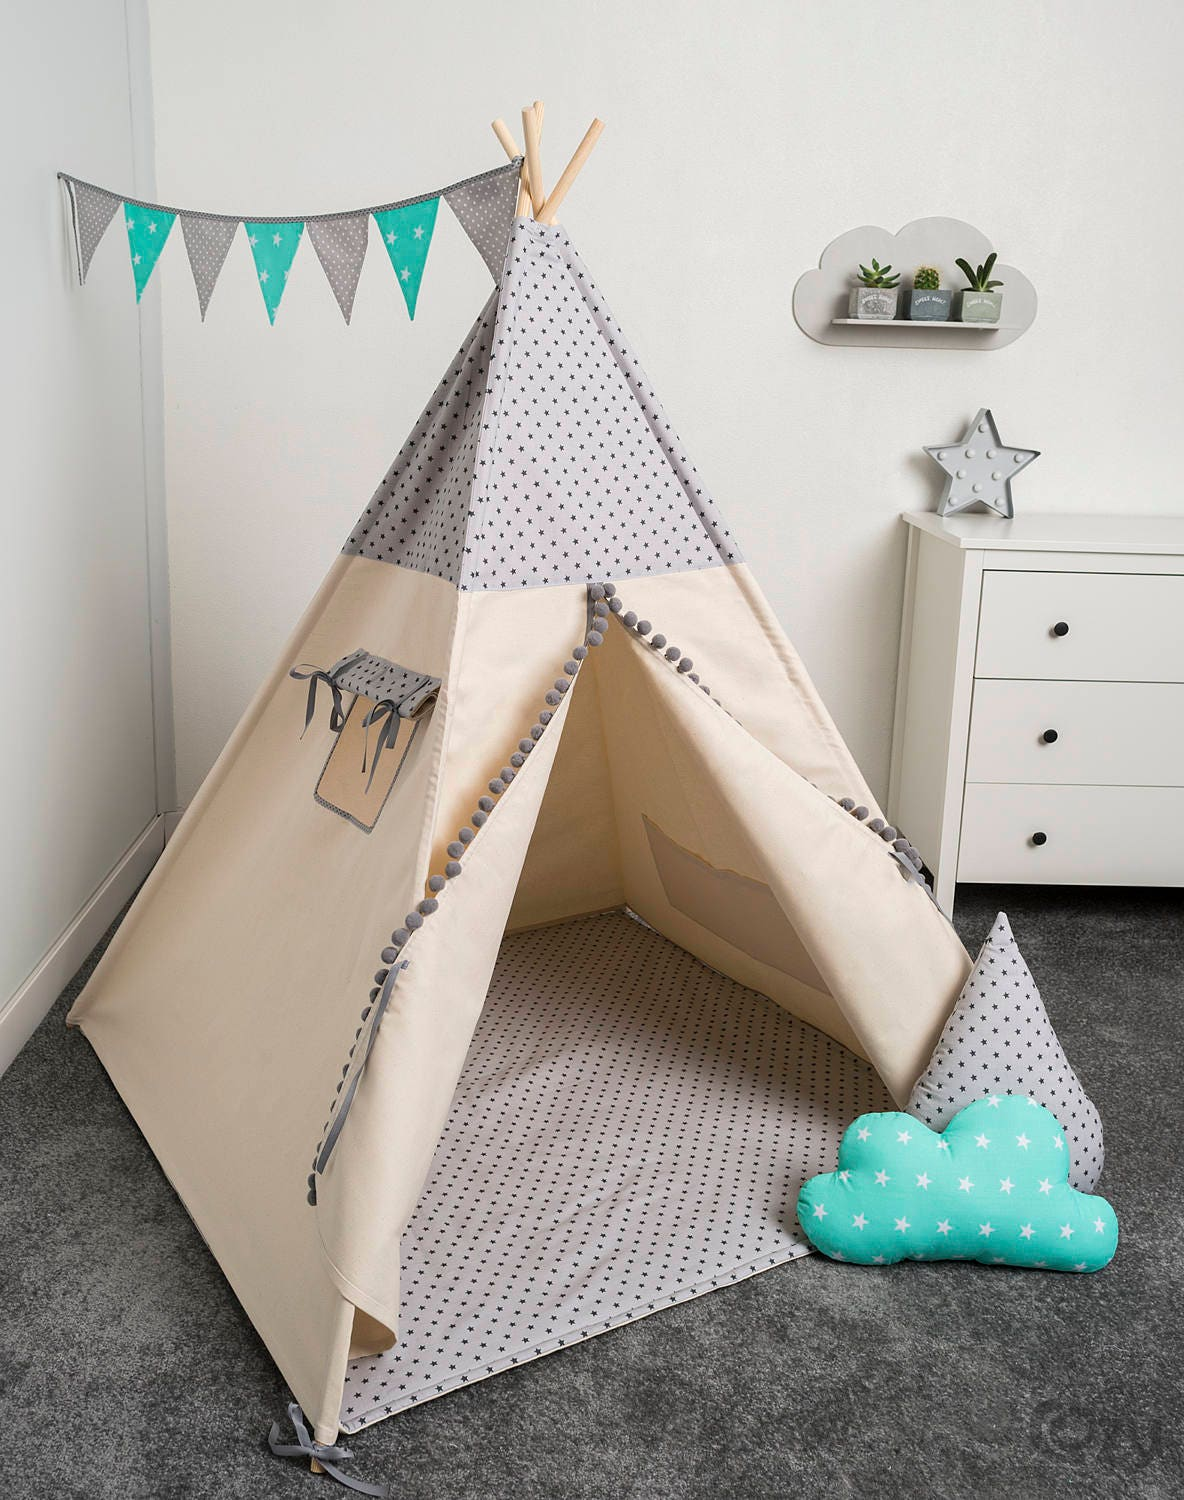 tente tipi indien les enfants jouent tente enfants tipi etsy. Black Bedroom Furniture Sets. Home Design Ideas